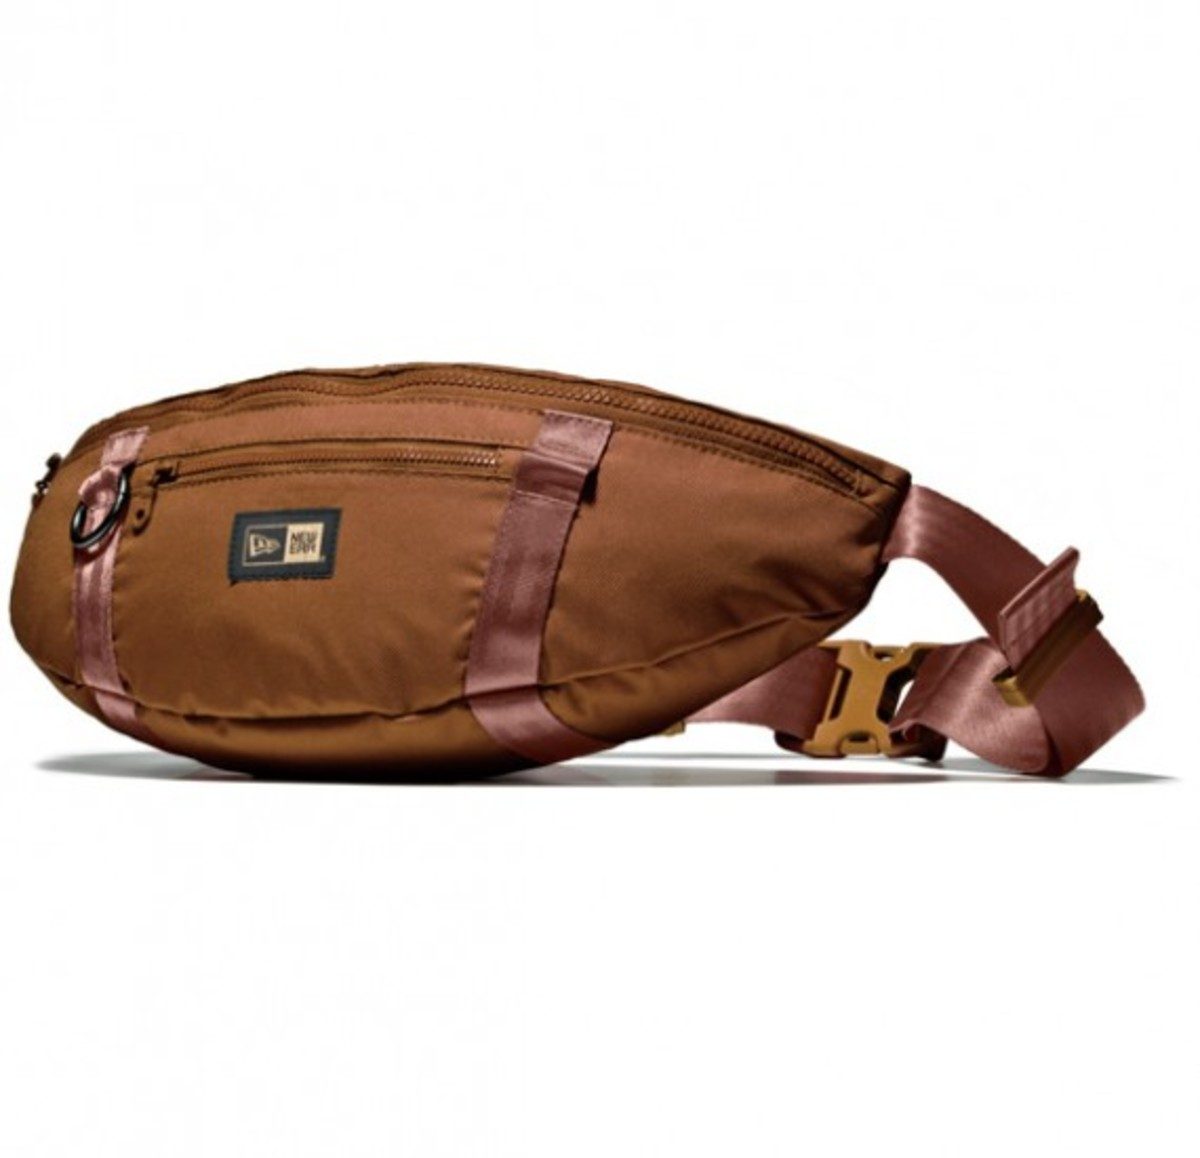 new-era-waist-bag-06